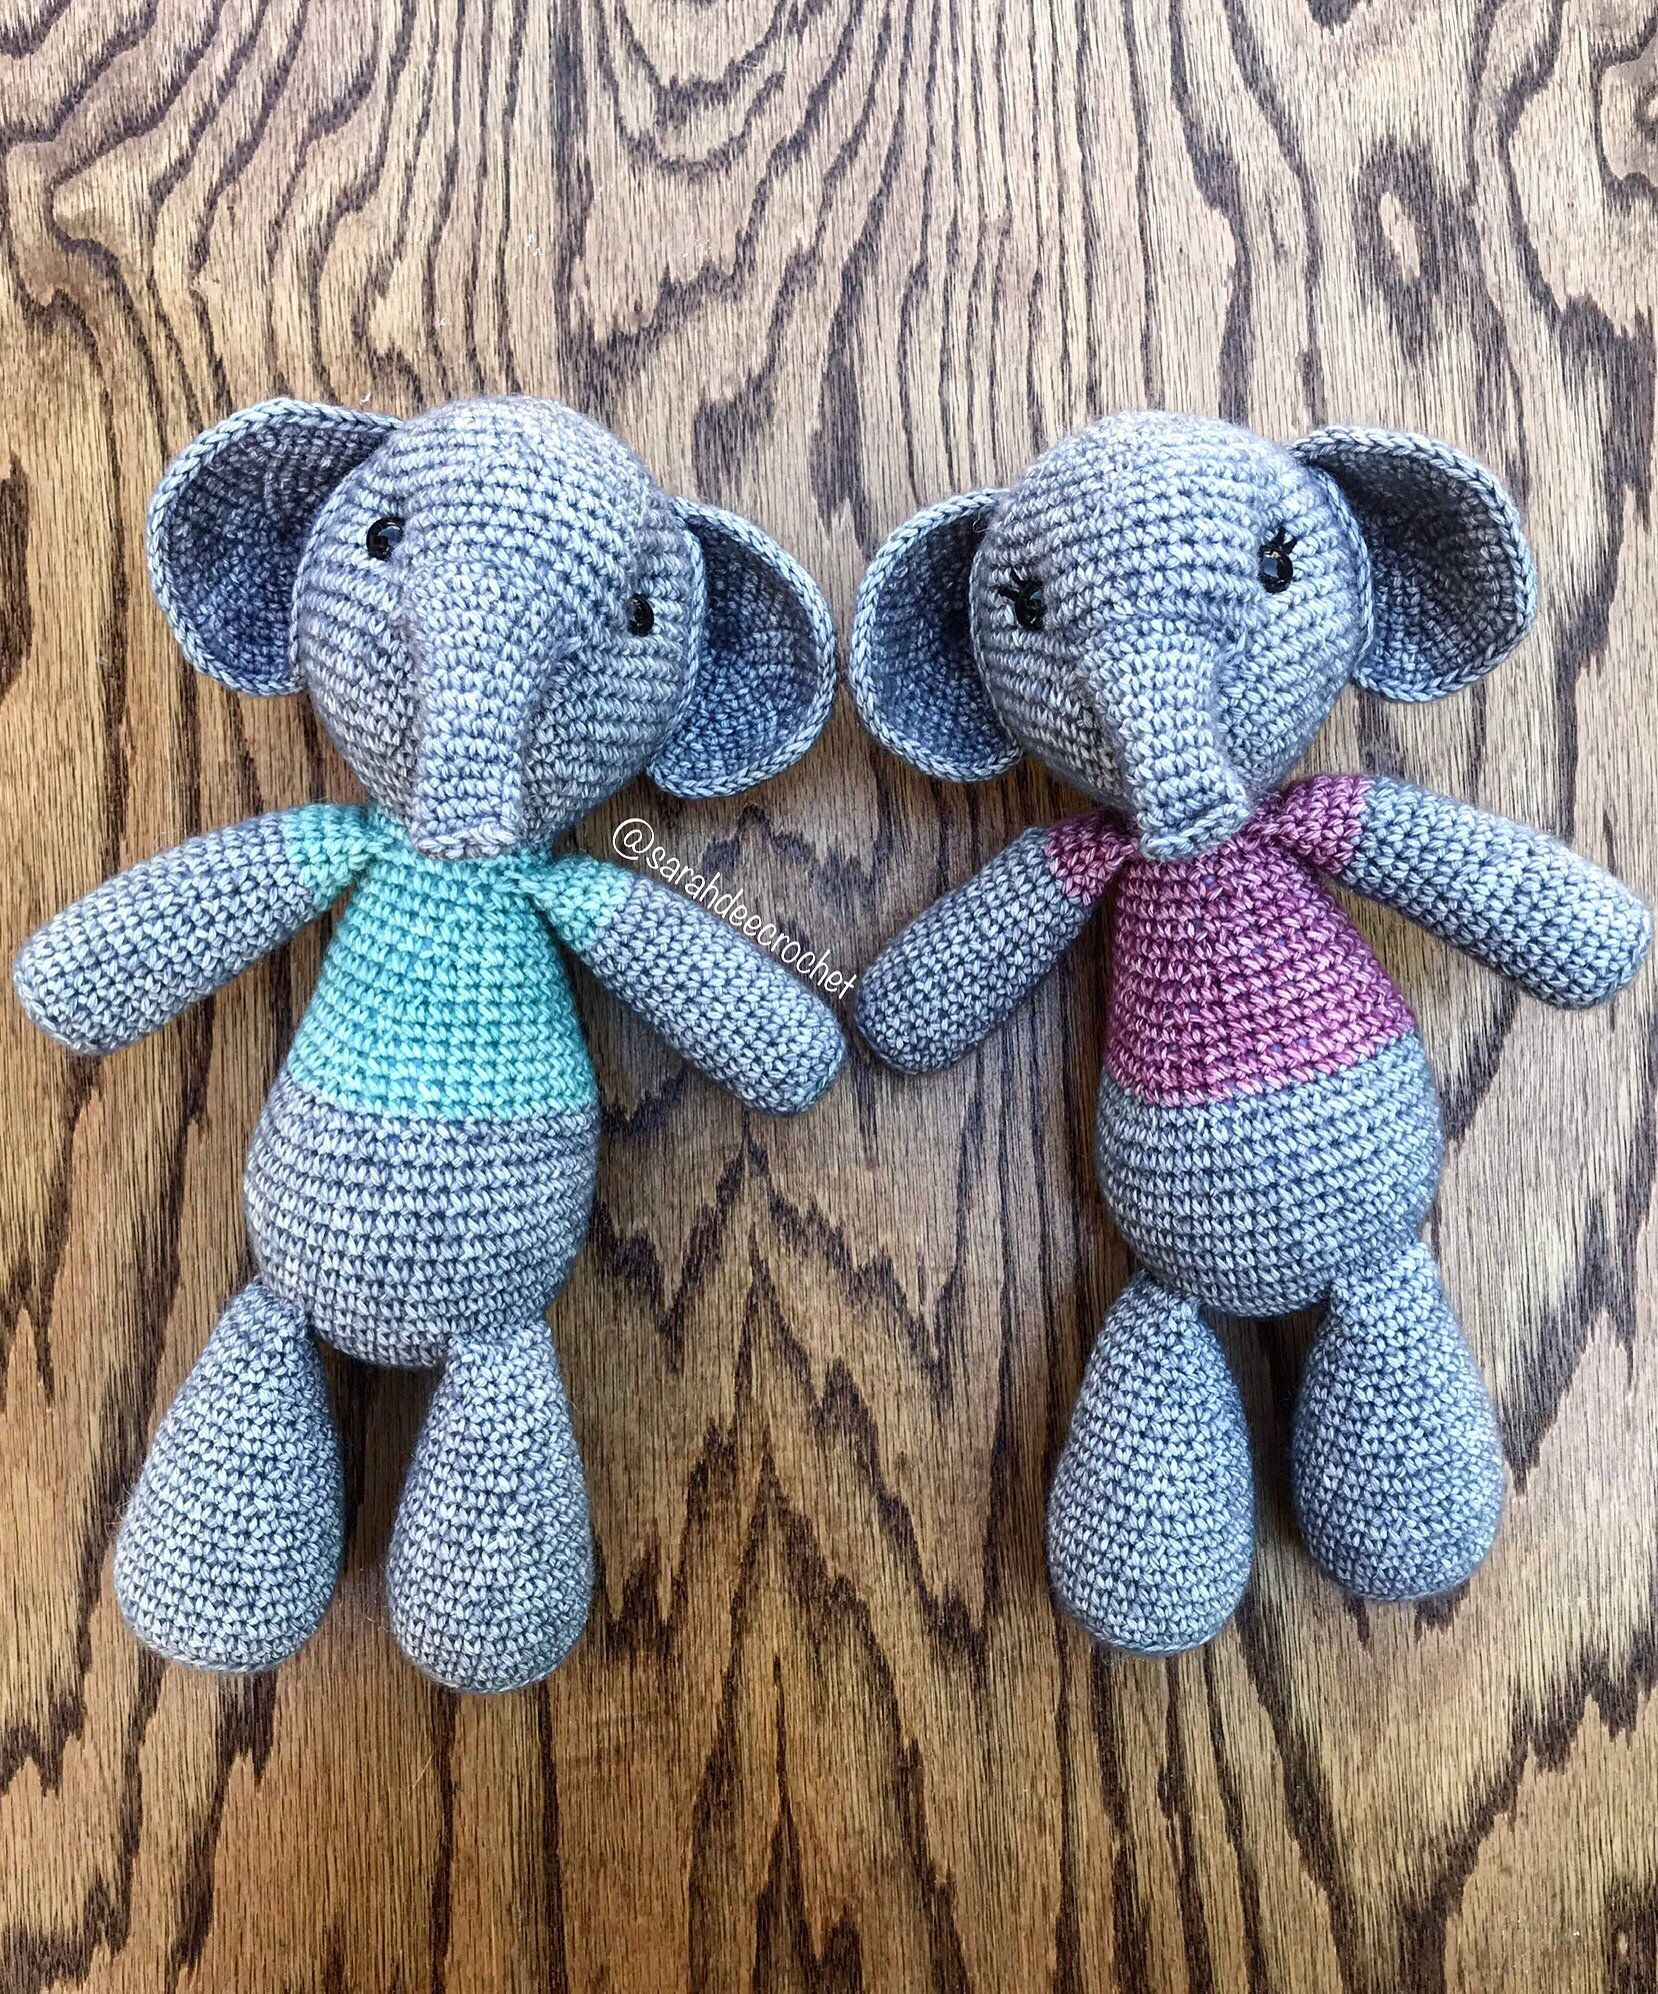 Crochet Baby Comforter, Sleepy Baby Elephant, Security Cuddle ... | 1994x1658